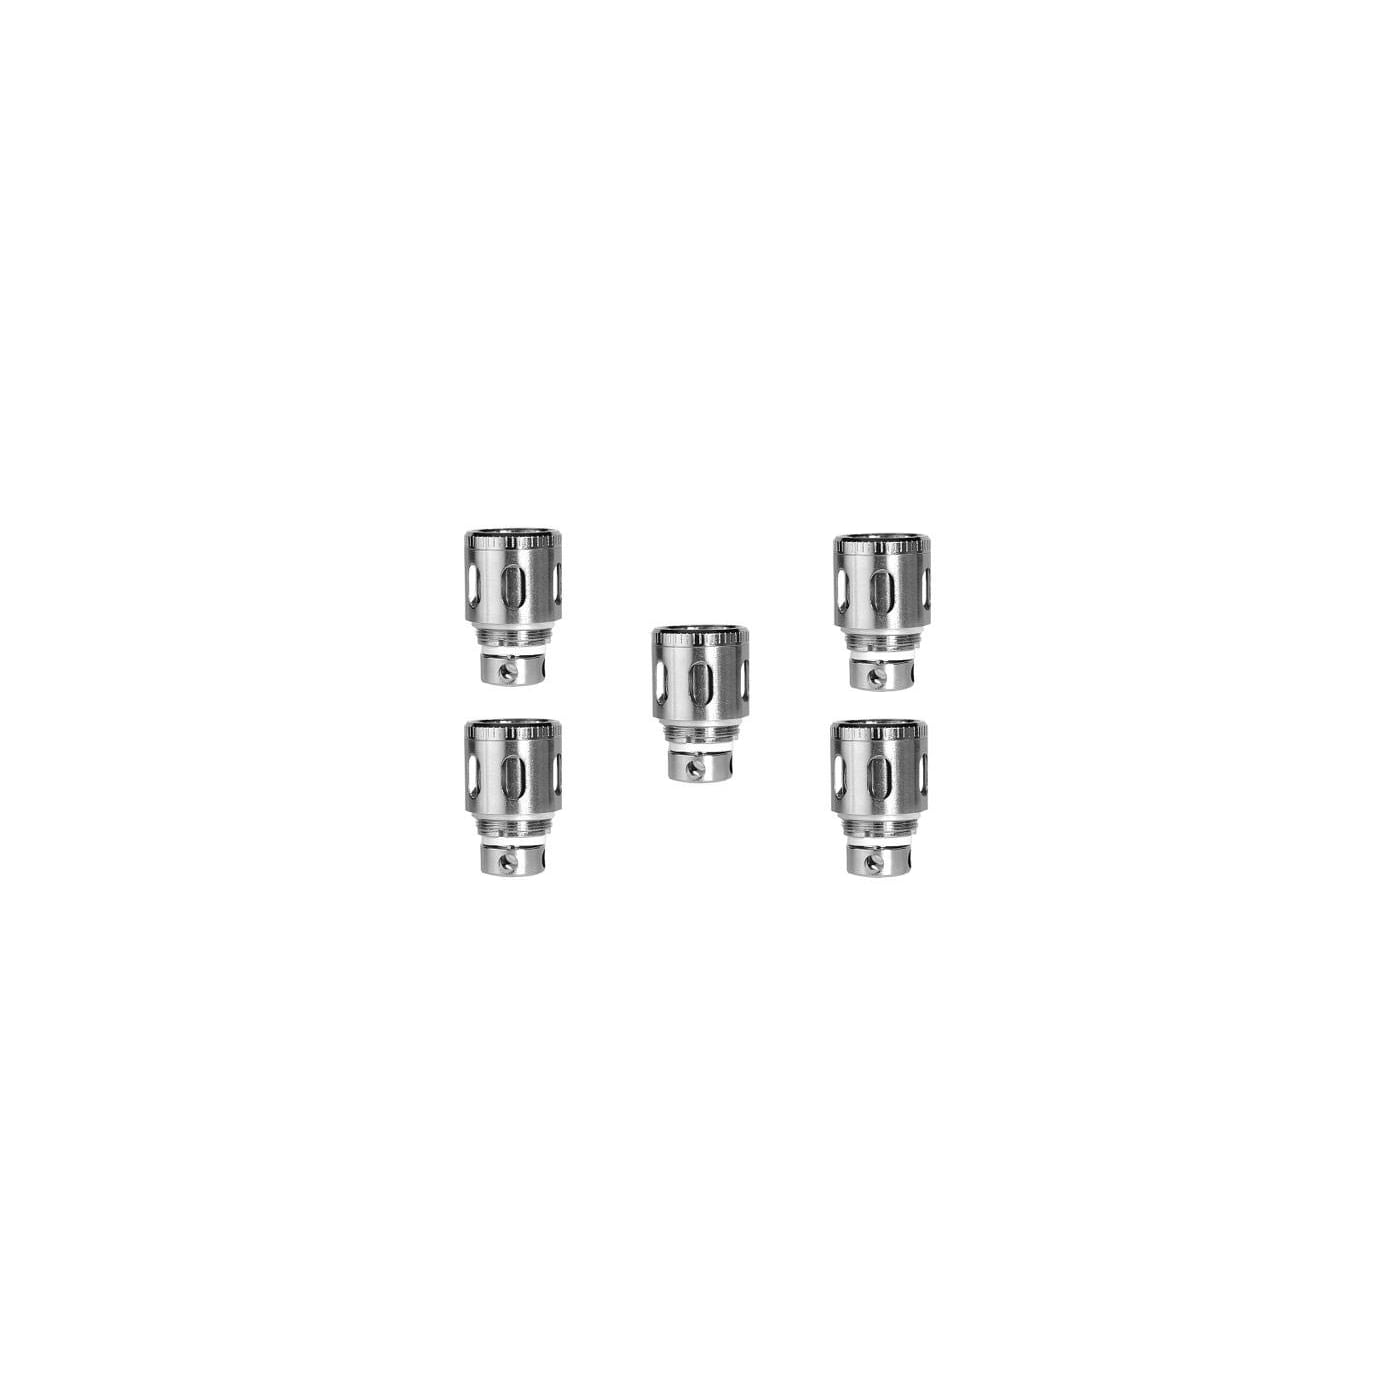 Arctic V8 Mini Hive Replacement Coil 5 pack